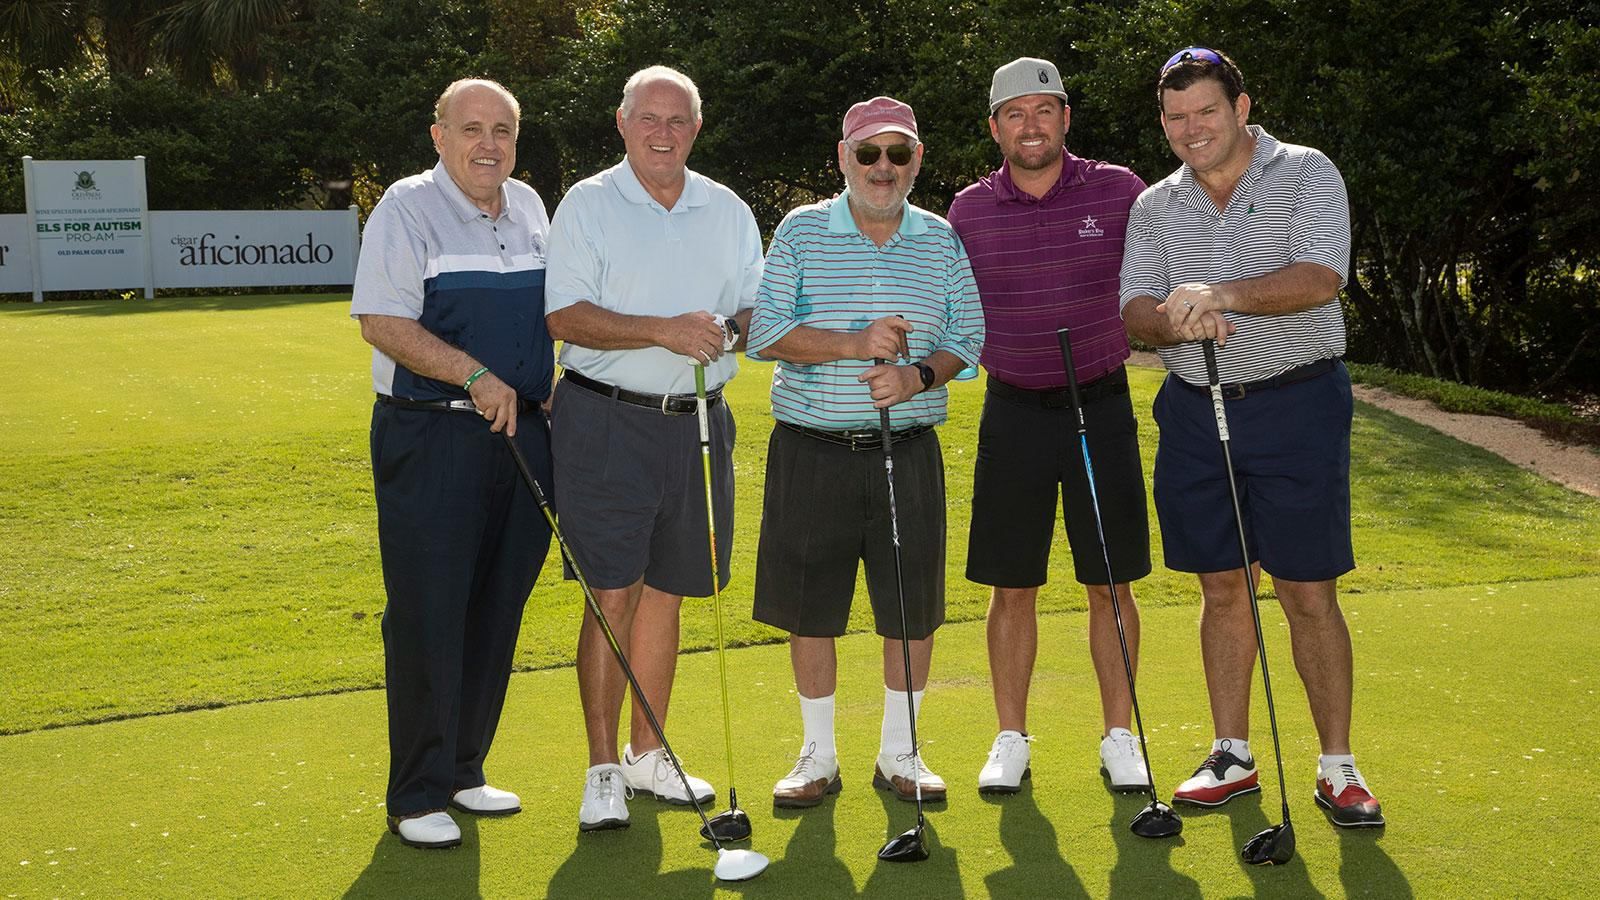 Marvin R. Shanken (center) led the team of Rudolph W. Giuliani, former Mayor of New York; radio star Rush Limbaugh; pro golfer Graeme McDowell, winner of the 2010 U.S. Open; and Fox News anchor Bret Baier.